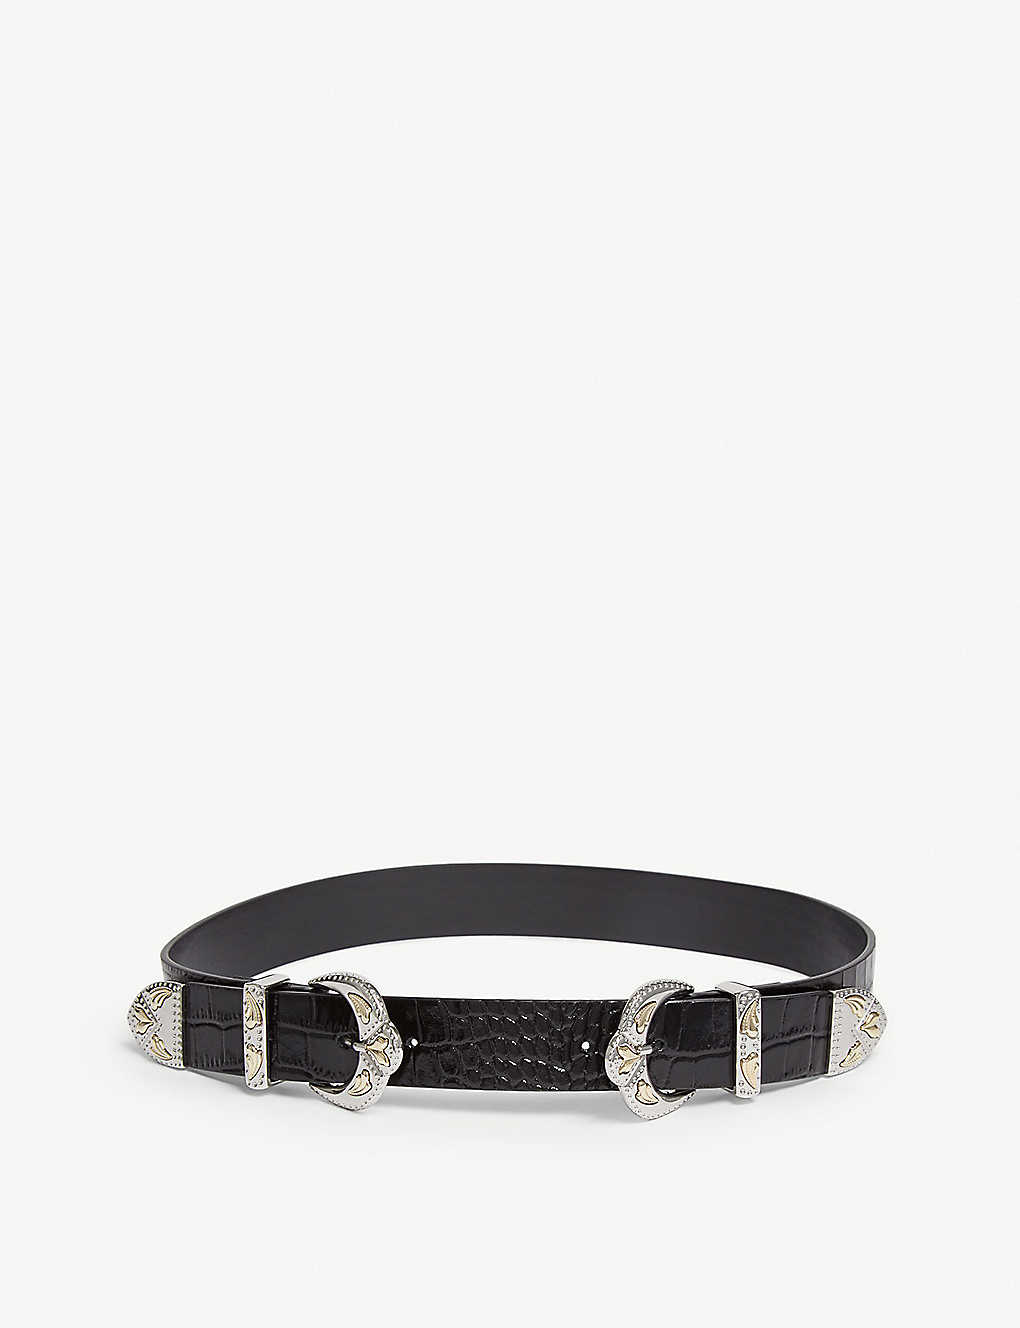 84853af88 MAJE - Double buckle croc-embossed leather belt | Selfridges.com